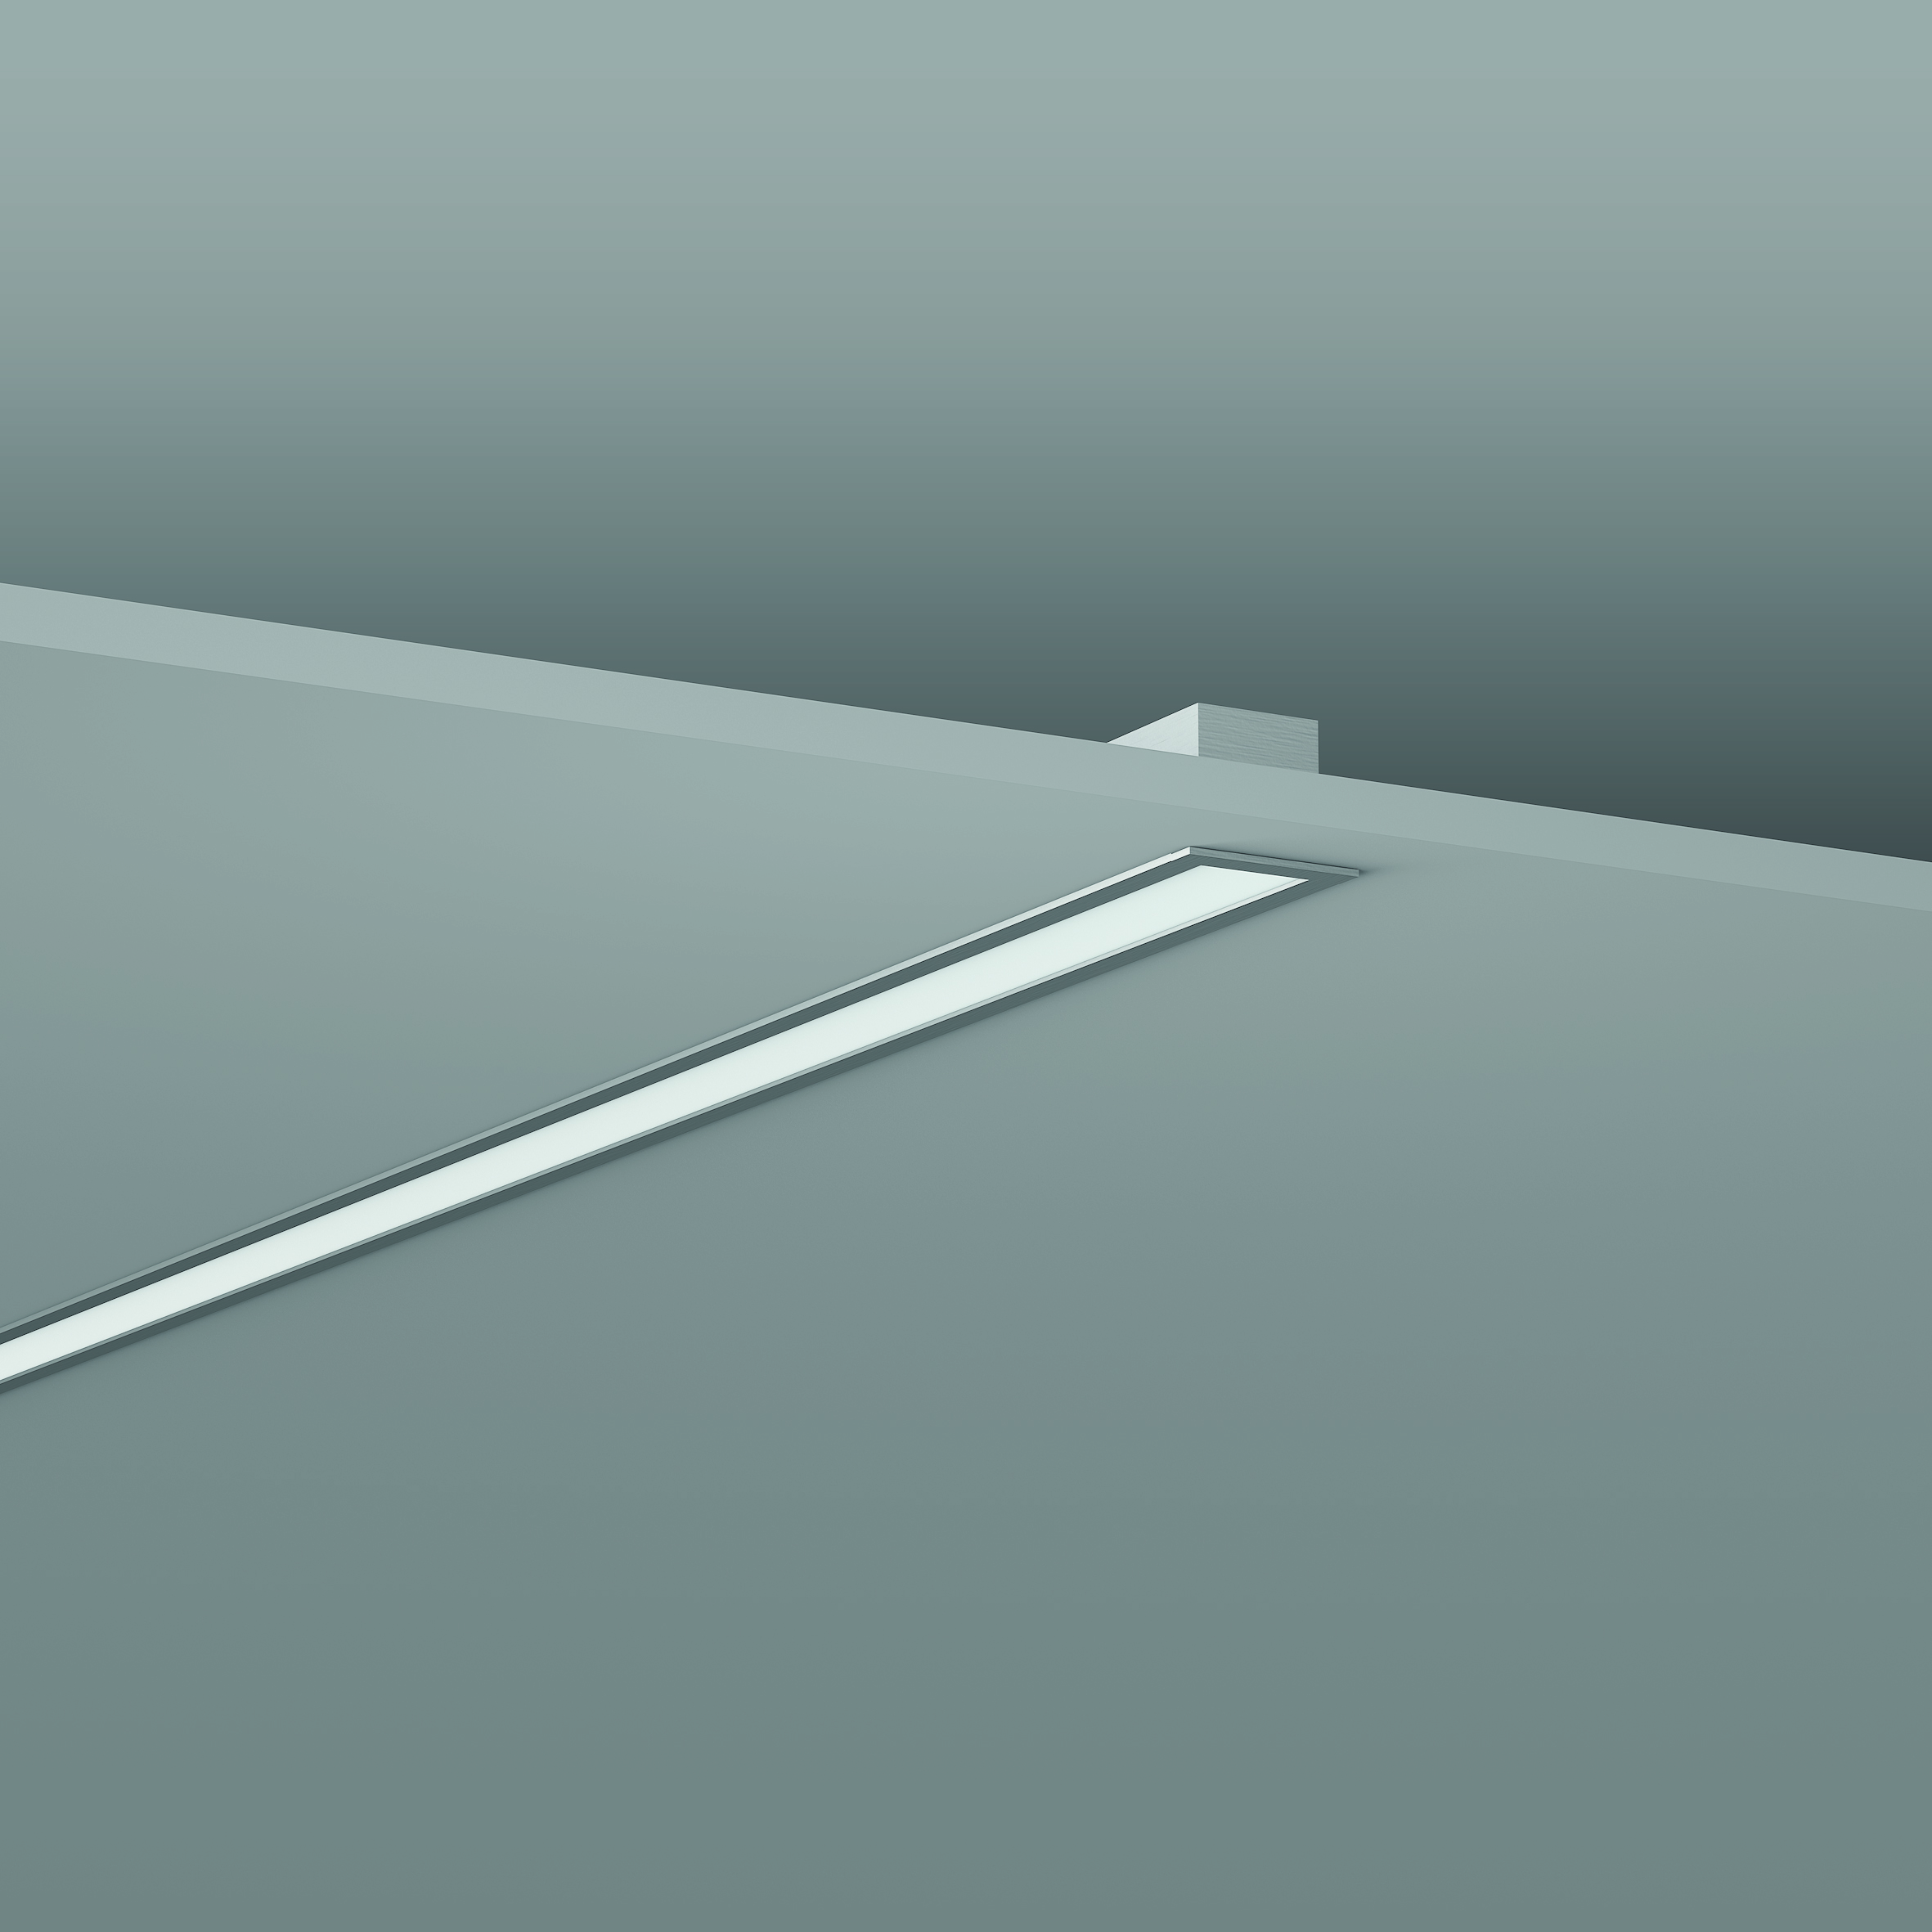 new rzb products linear luminaires rzb leuchten. Black Bedroom Furniture Sets. Home Design Ideas